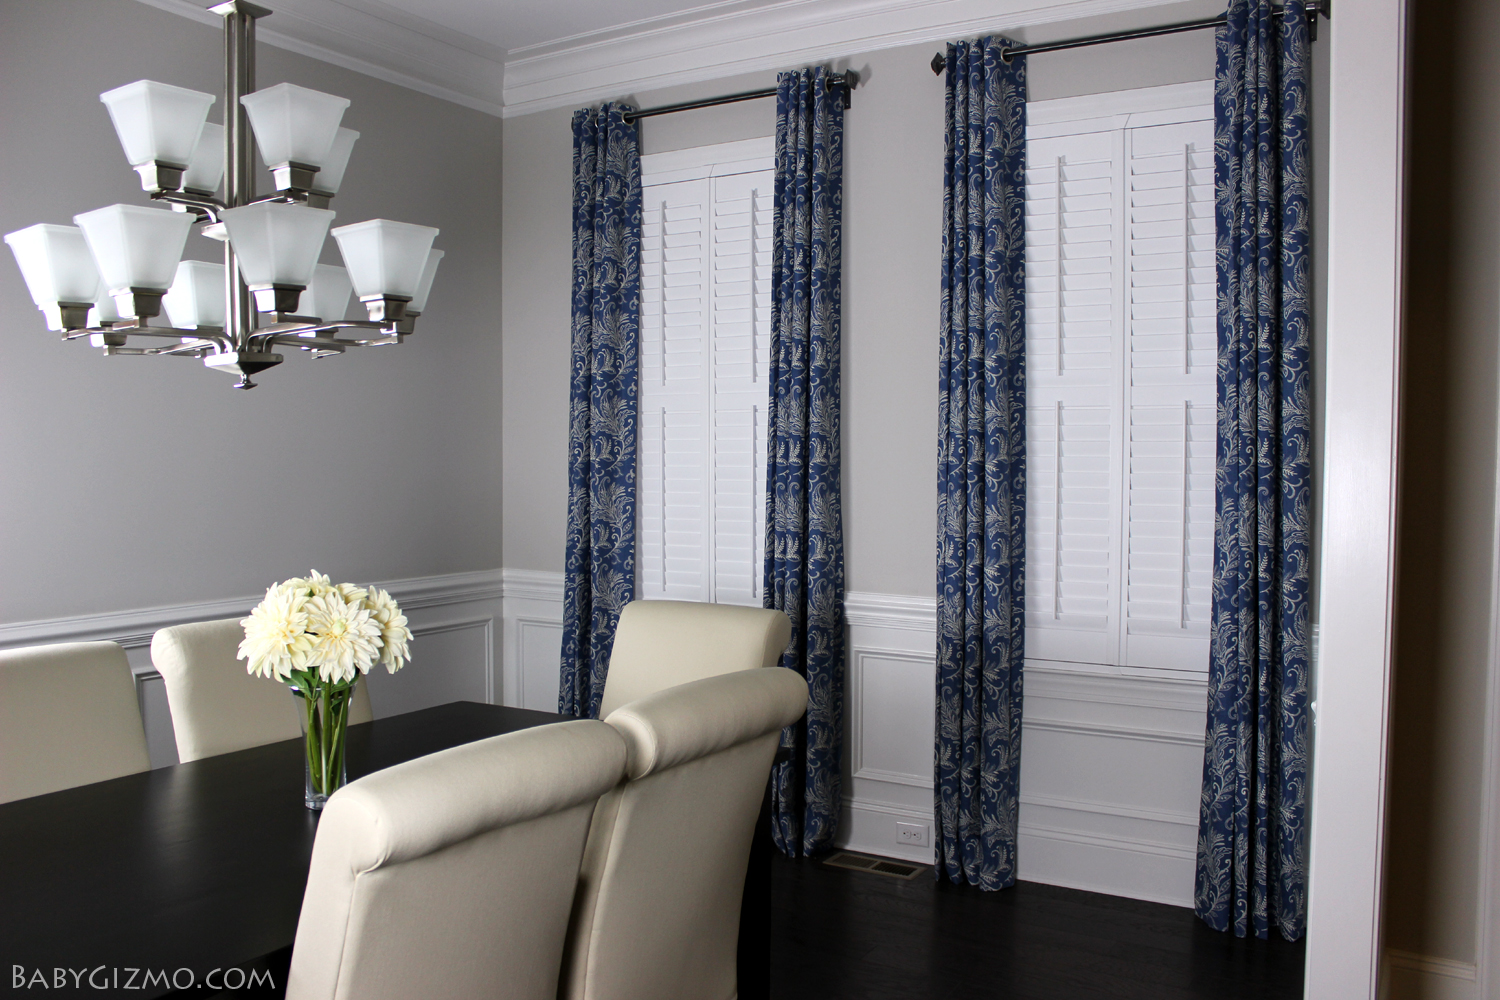 Stunning shutter blinds customer hollie outfitted her home with blinds.com simplicity wood shutters  in white ygscrja